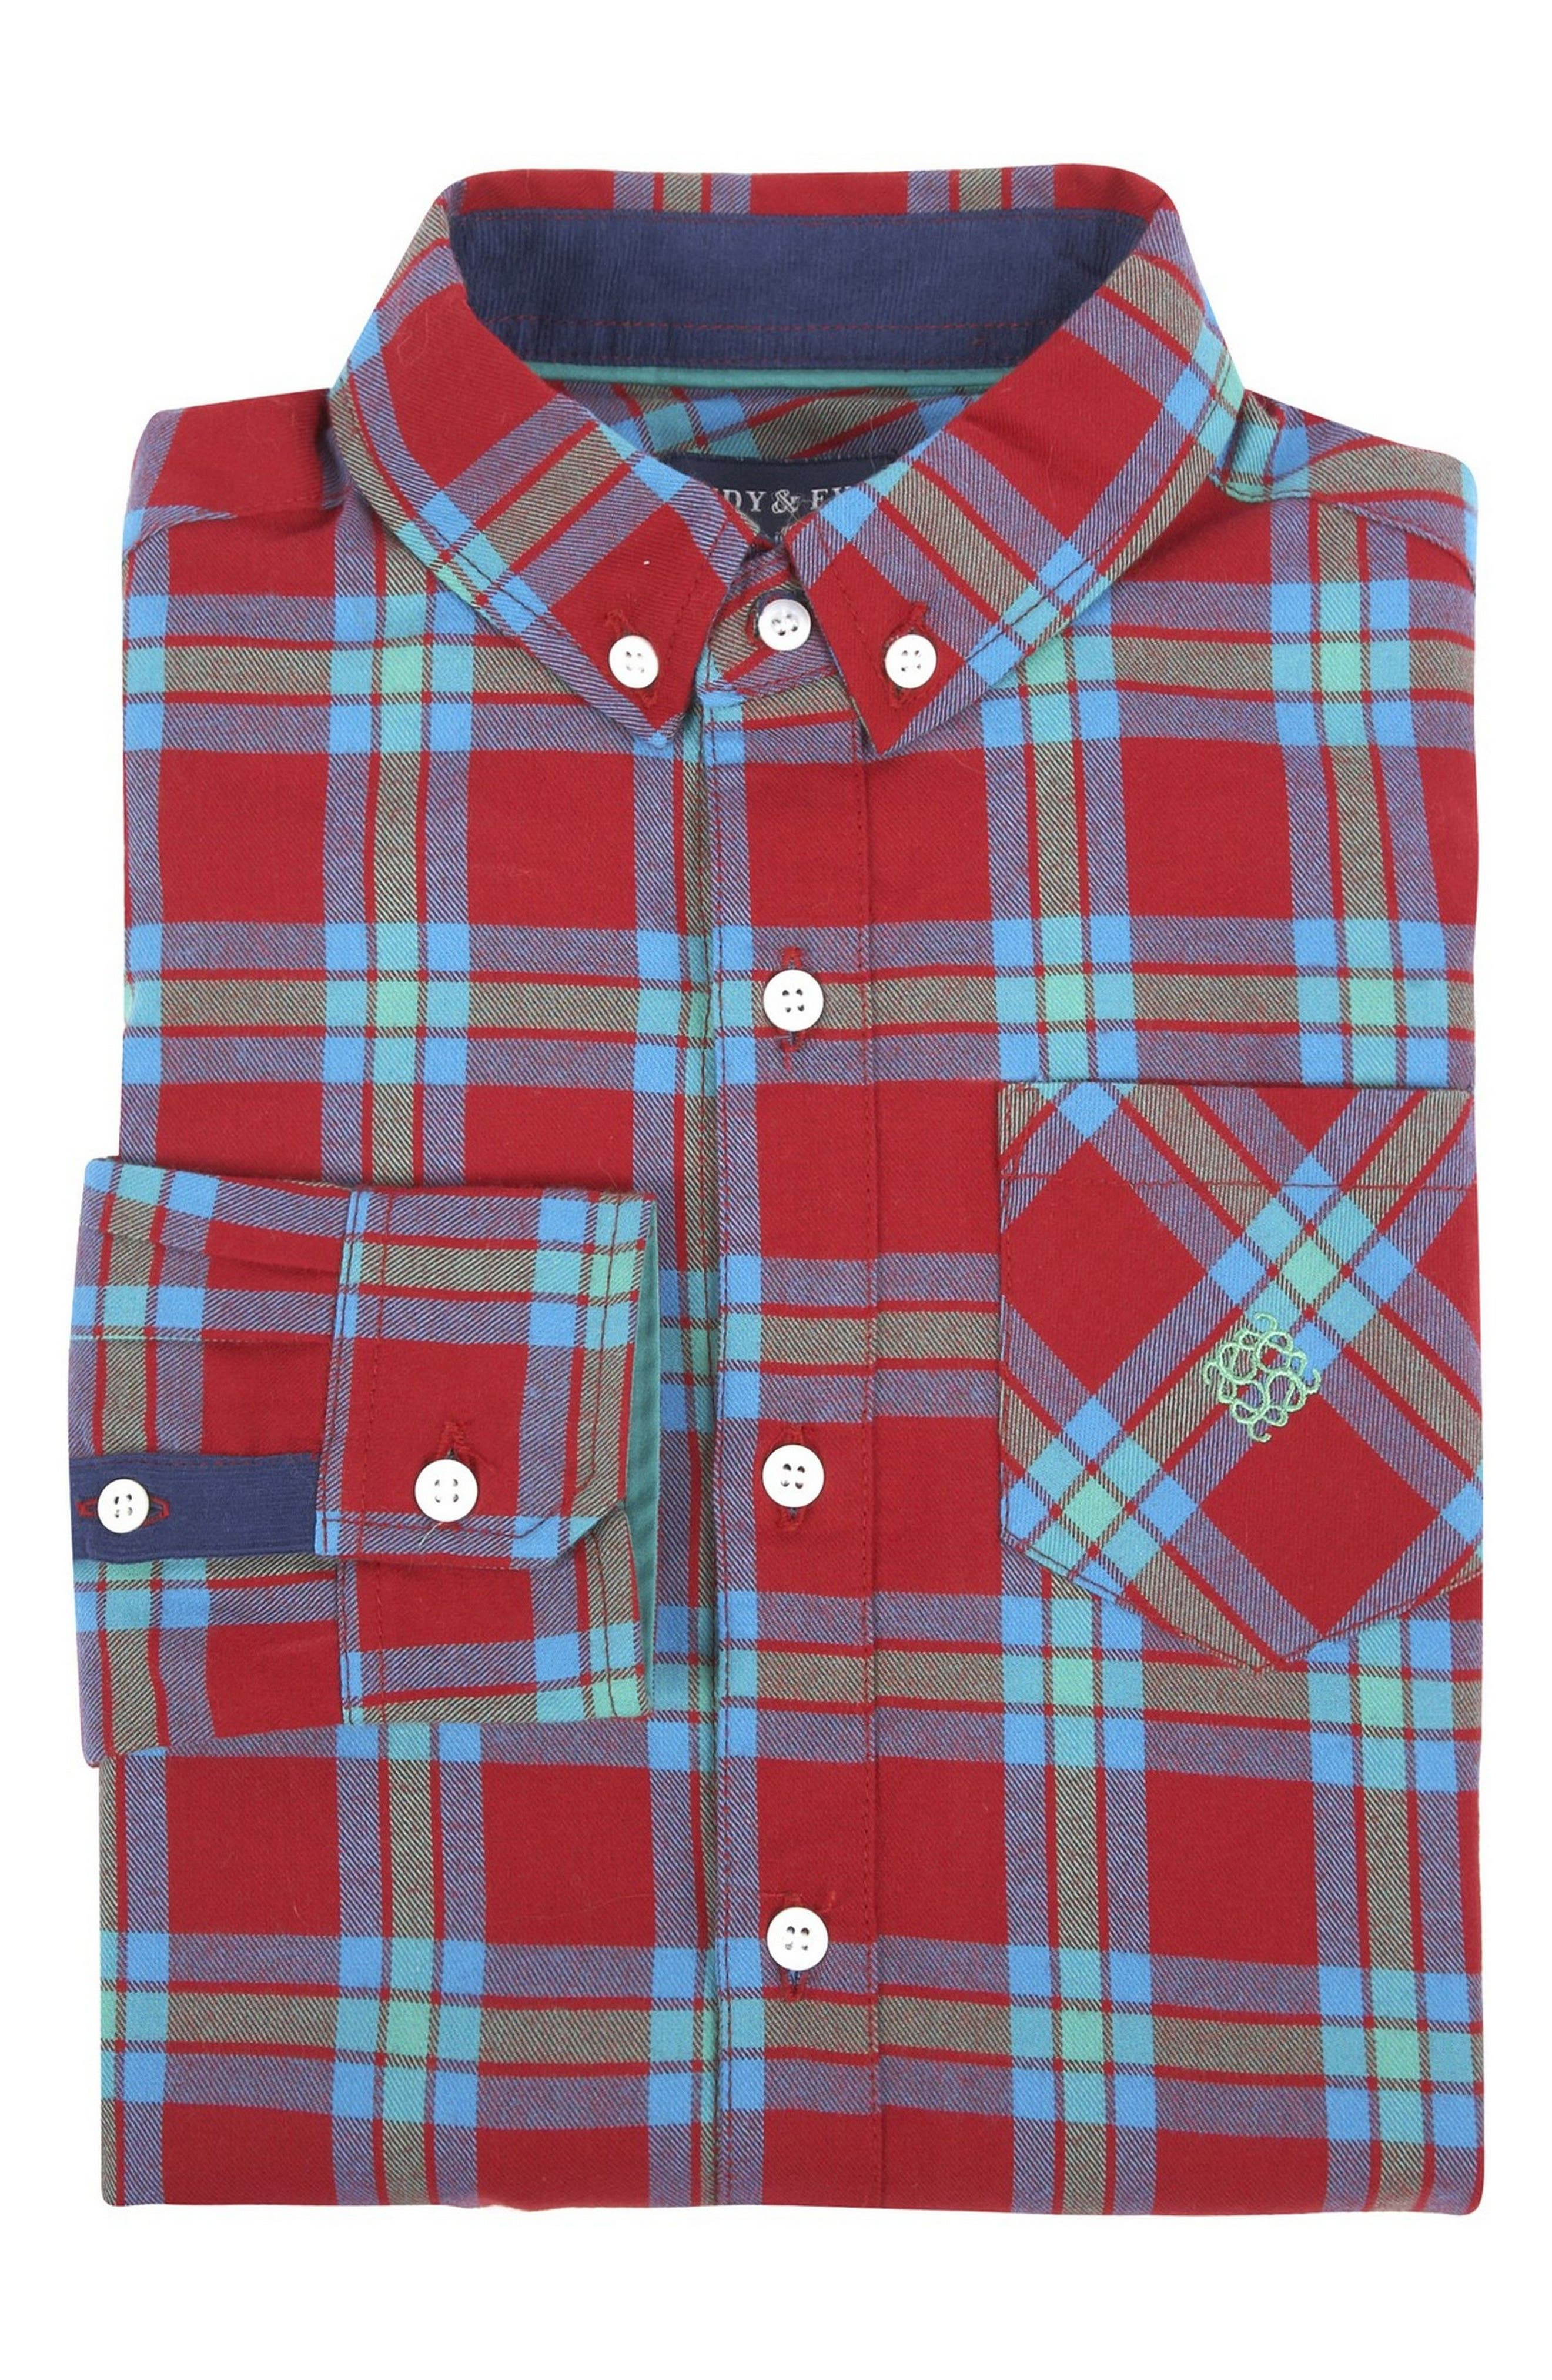 Andy & Evan Flannel Shirtzie Bodysuit (Baby Boys)